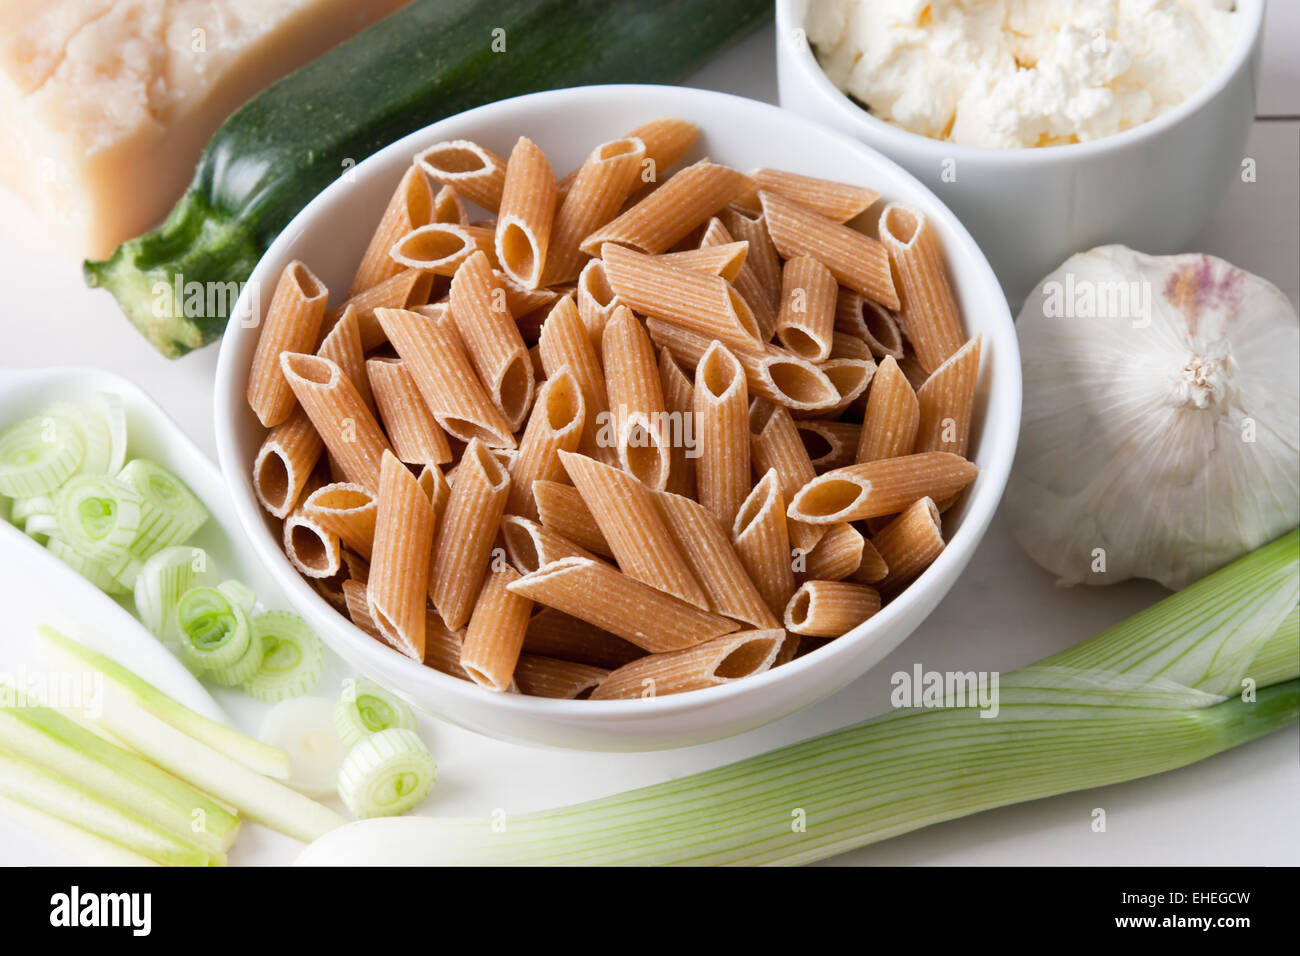 Ingredients for Pasta with Courgette Sauce - Stock Image